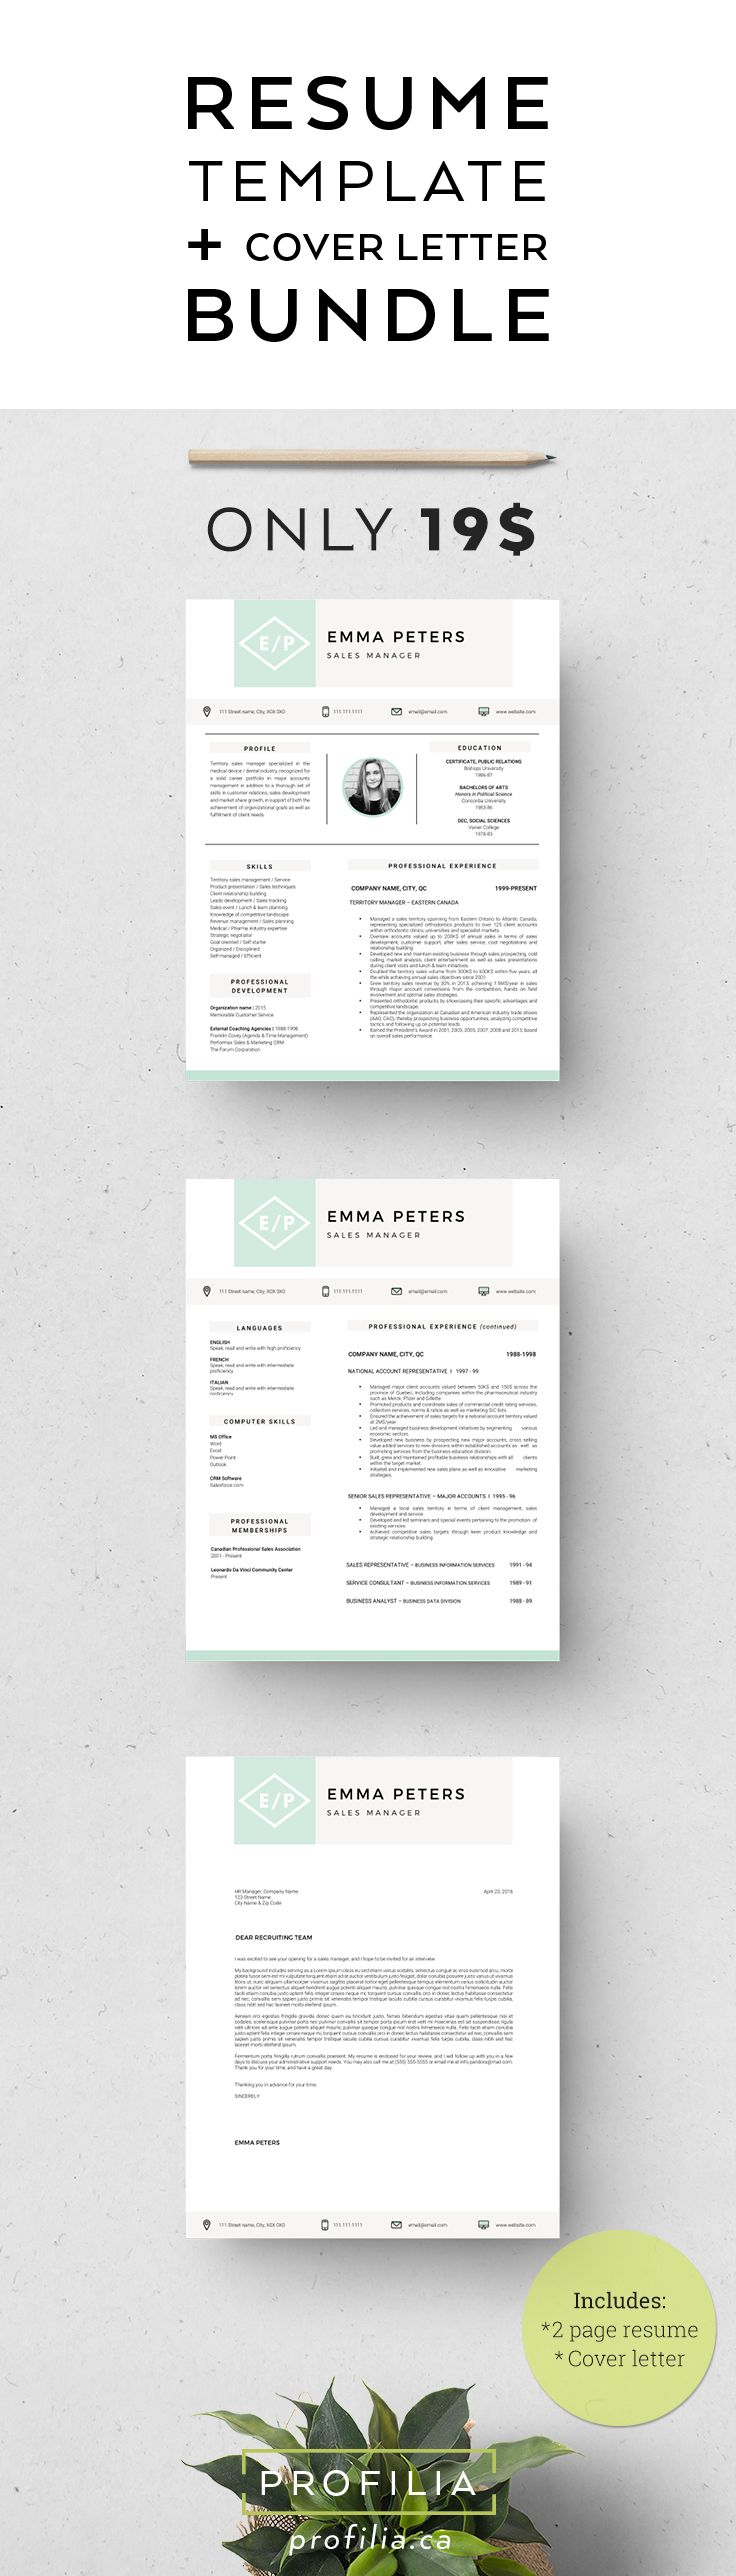 Professional Cover Letter Template New 324 Best Profilia Cv  Cover Letters Advice & Strategies Images Inspiration Design